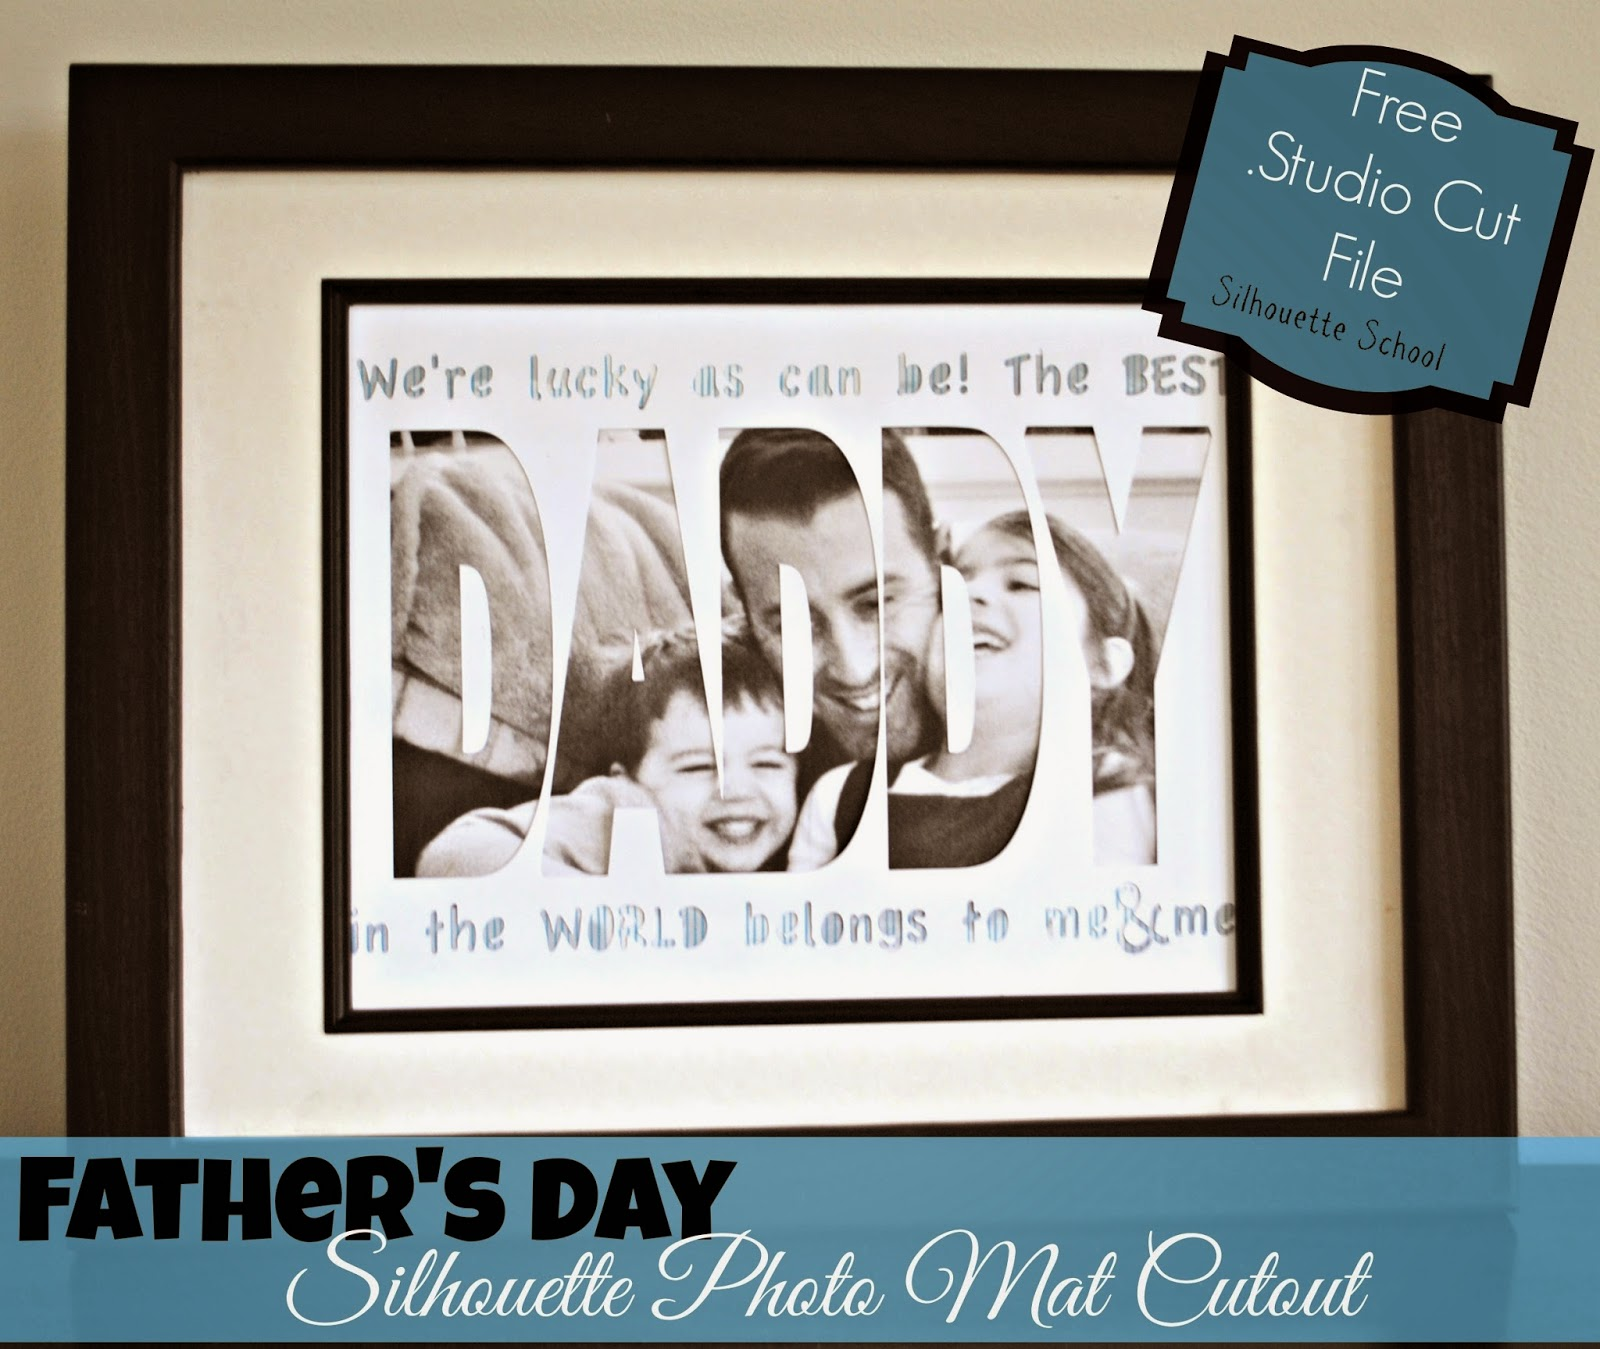 Silhouette Studio, free cut file, Daddy card, Father's Day, Silhouette tutorial